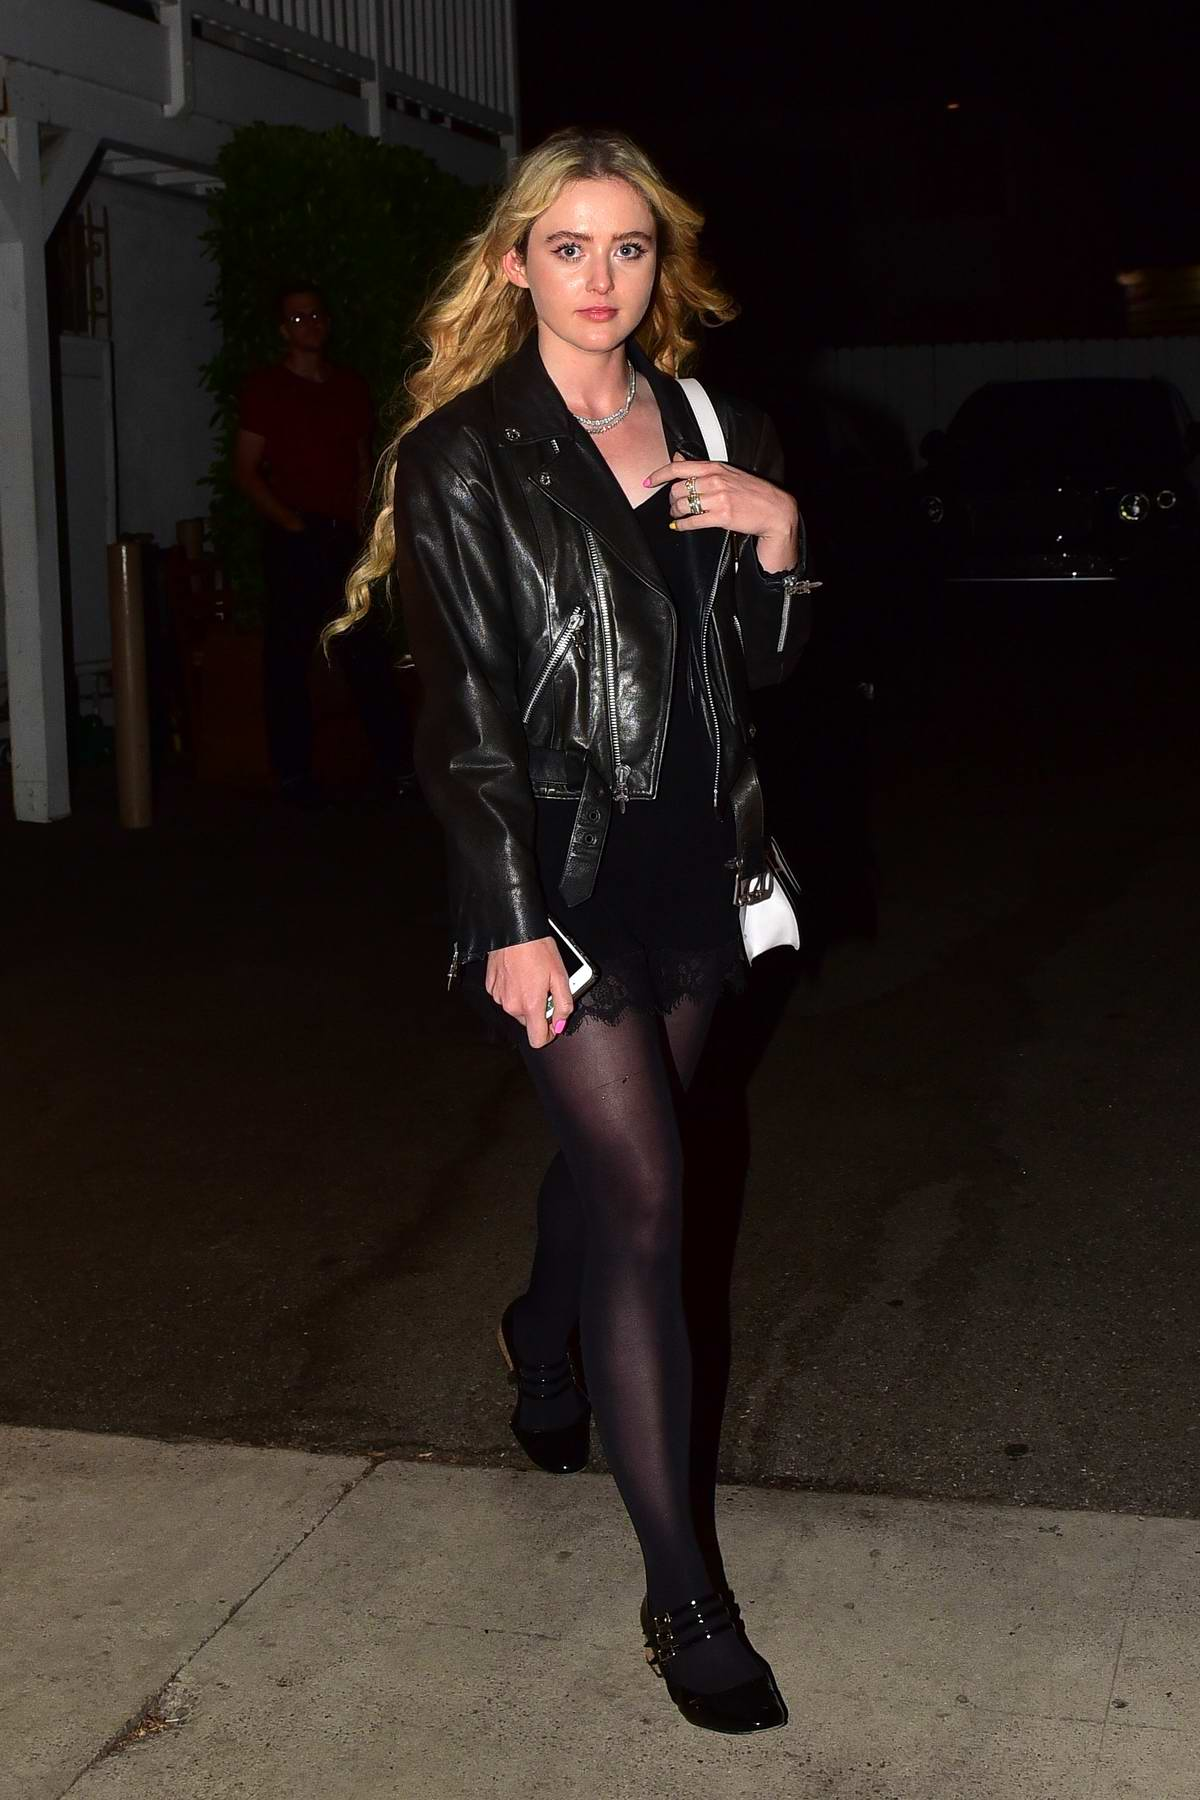 Kathryn Newton enjoys a night out with Brandon Thomas Lee at Giorgio Baldi in Santa Monica, California